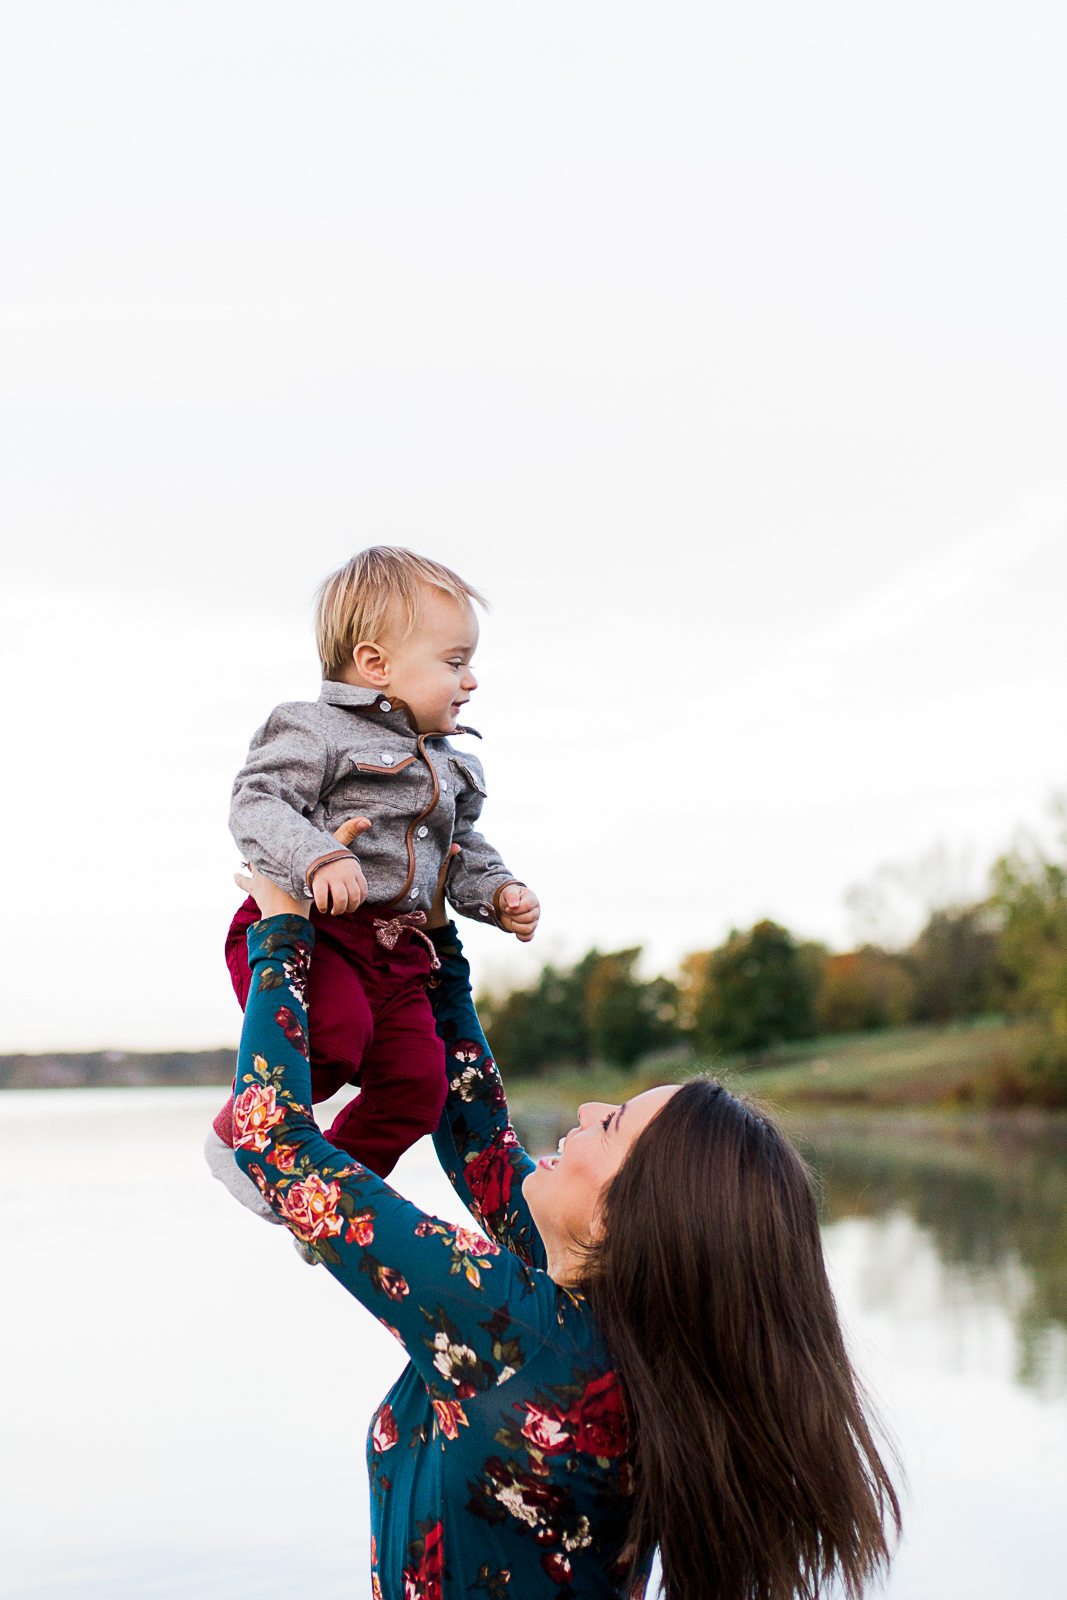 Mother lifts son up in the air, Kansas City family photographer, candid lifestyle photography, mommy and me session, Shawnee Mission Park, Rebecca Clair Photography